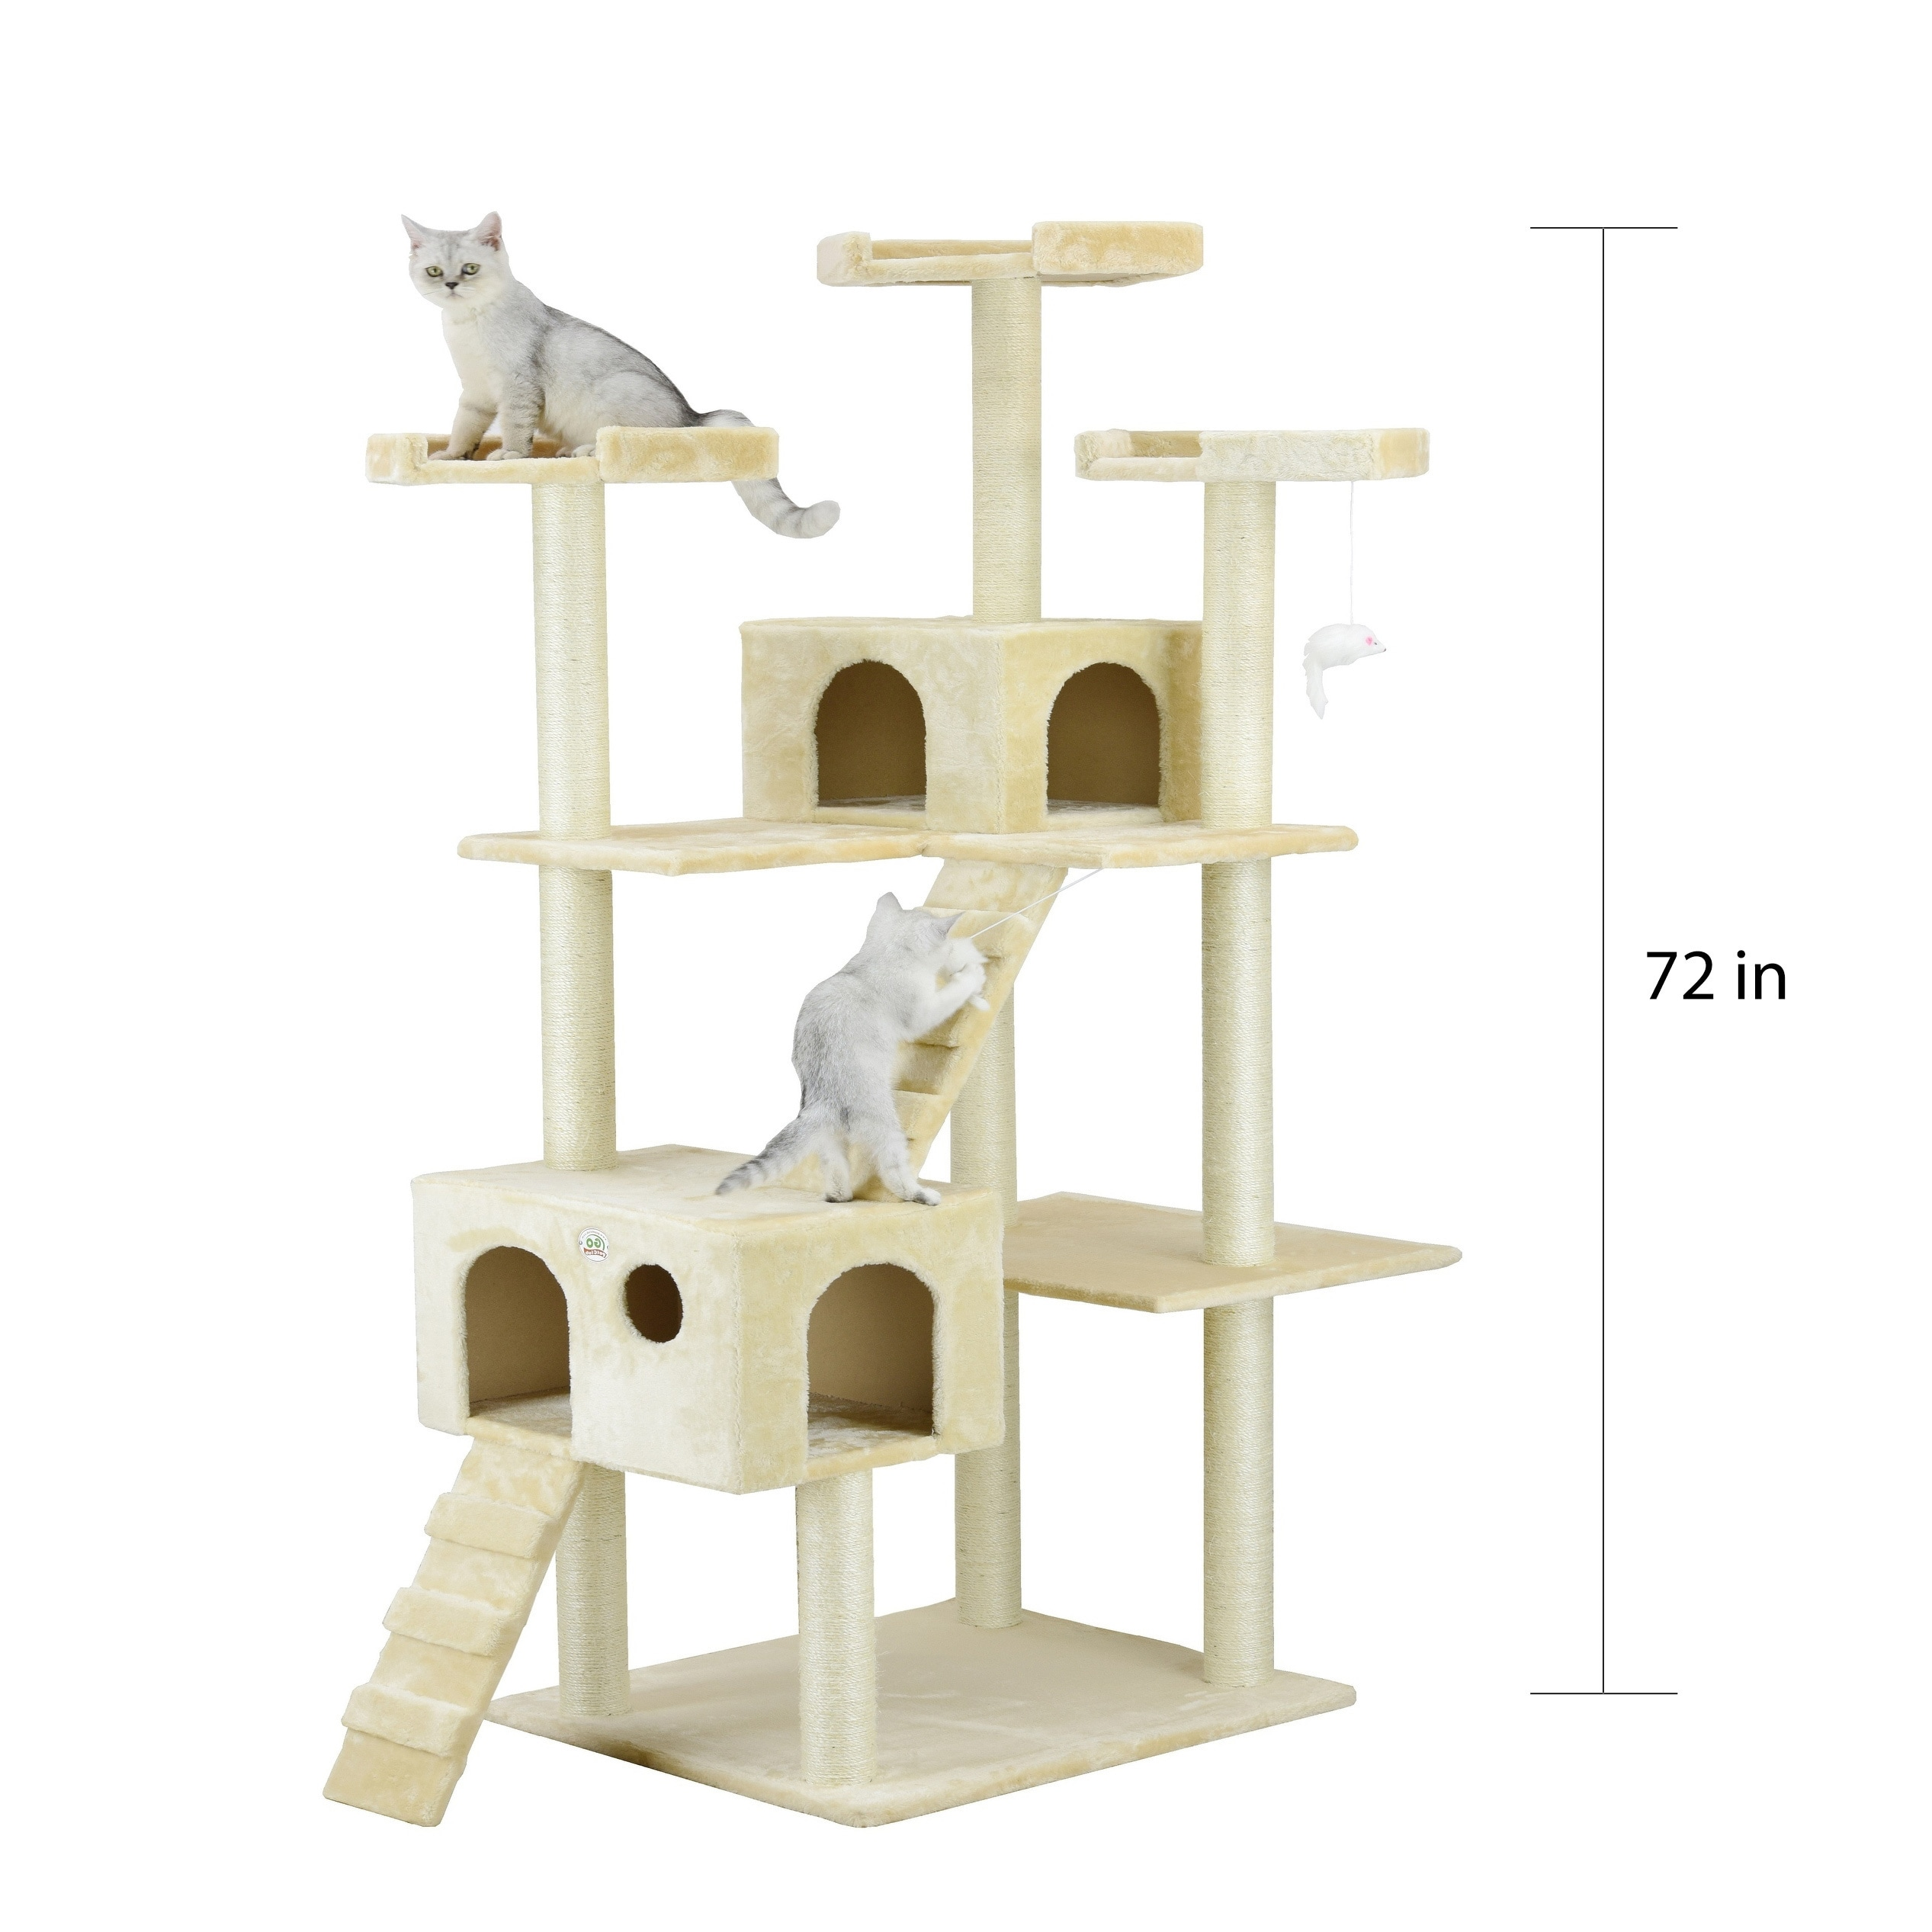 Go Pet Club Jungle Gym Cat Tree Condo and Perch Furniture Shop